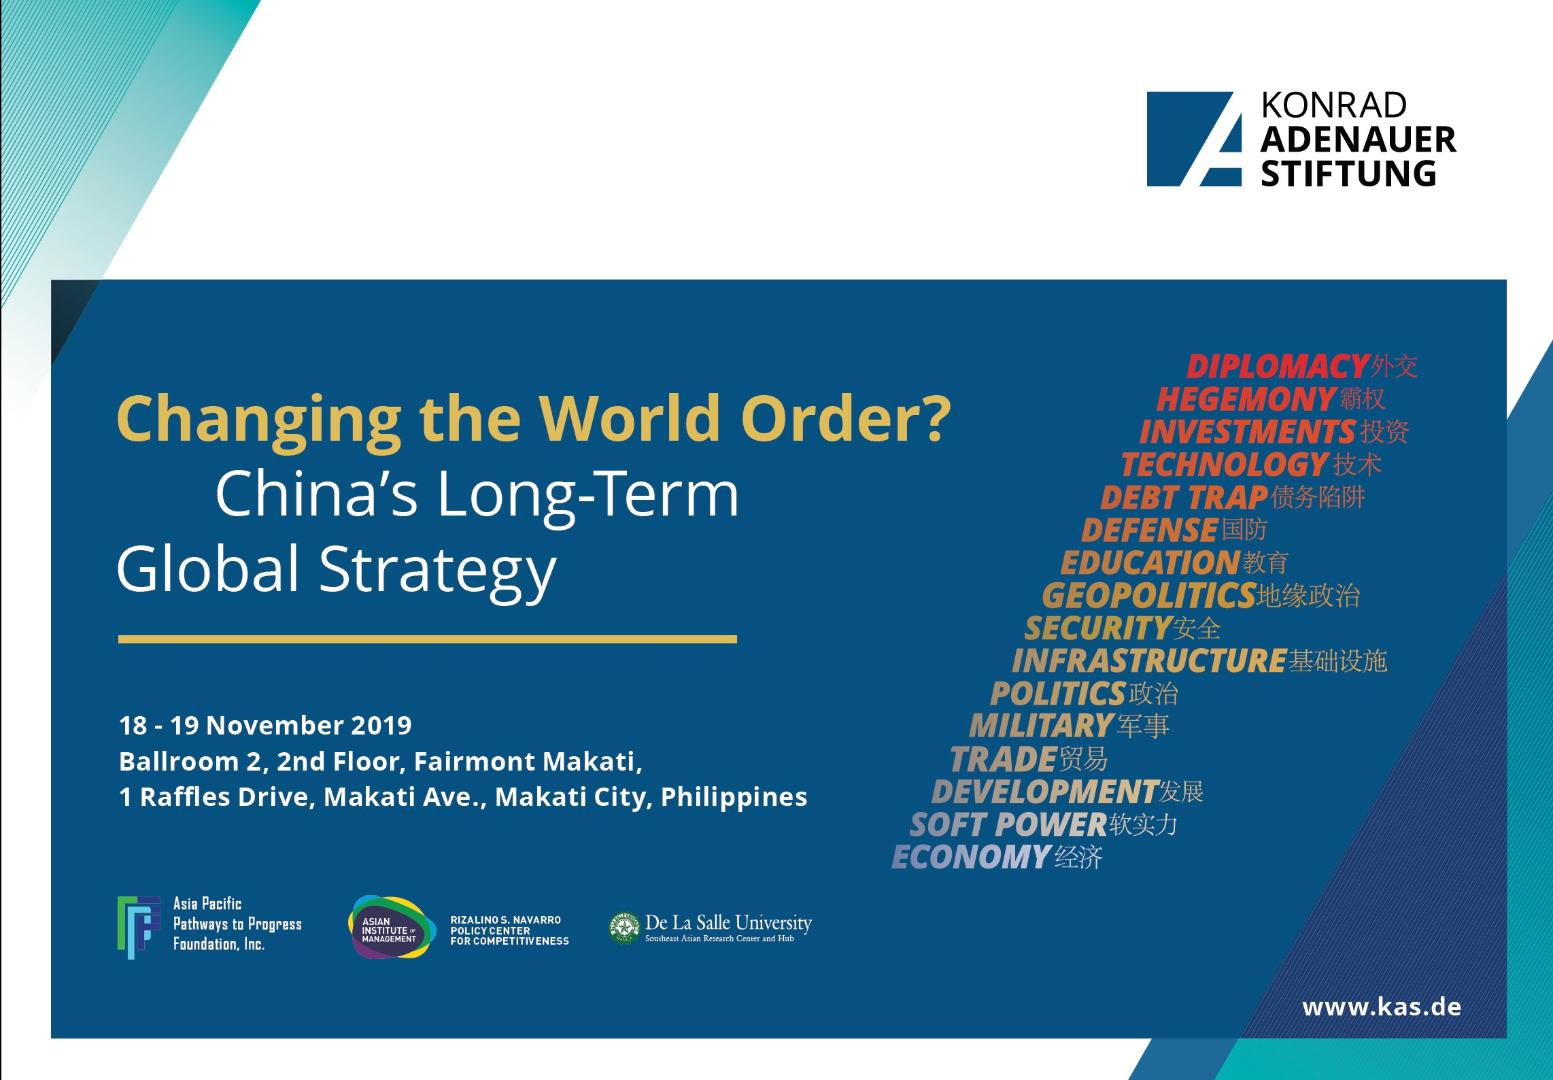 Changing the World Order? China's Long-Term Global Strategy